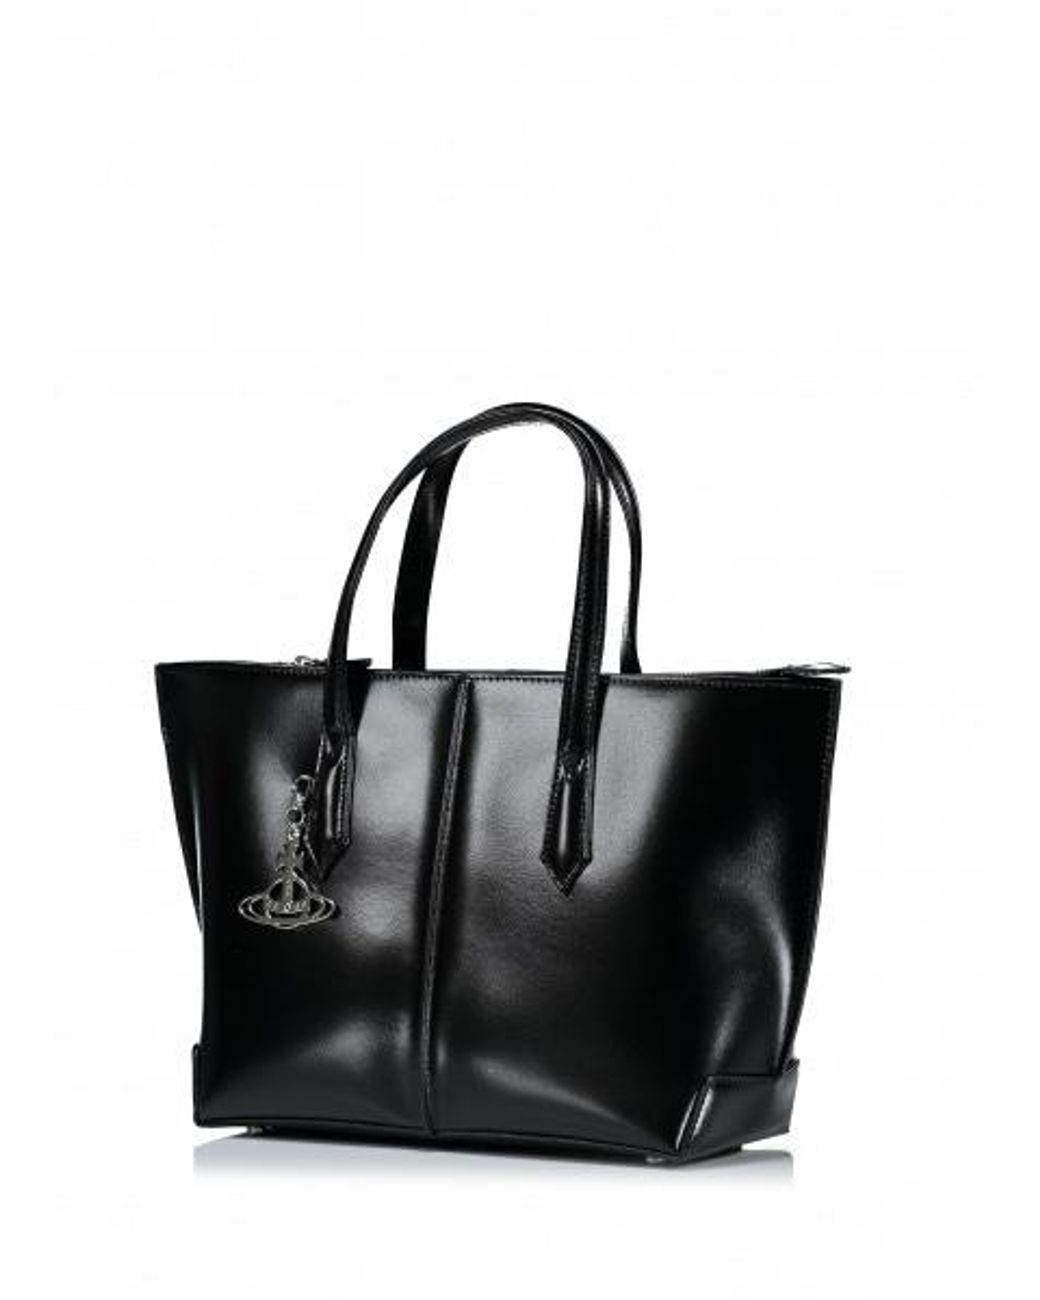 b01acc2ecd Vivienne Westwood Sarah Large Shopper Bag in Black - Save 10% - Lyst